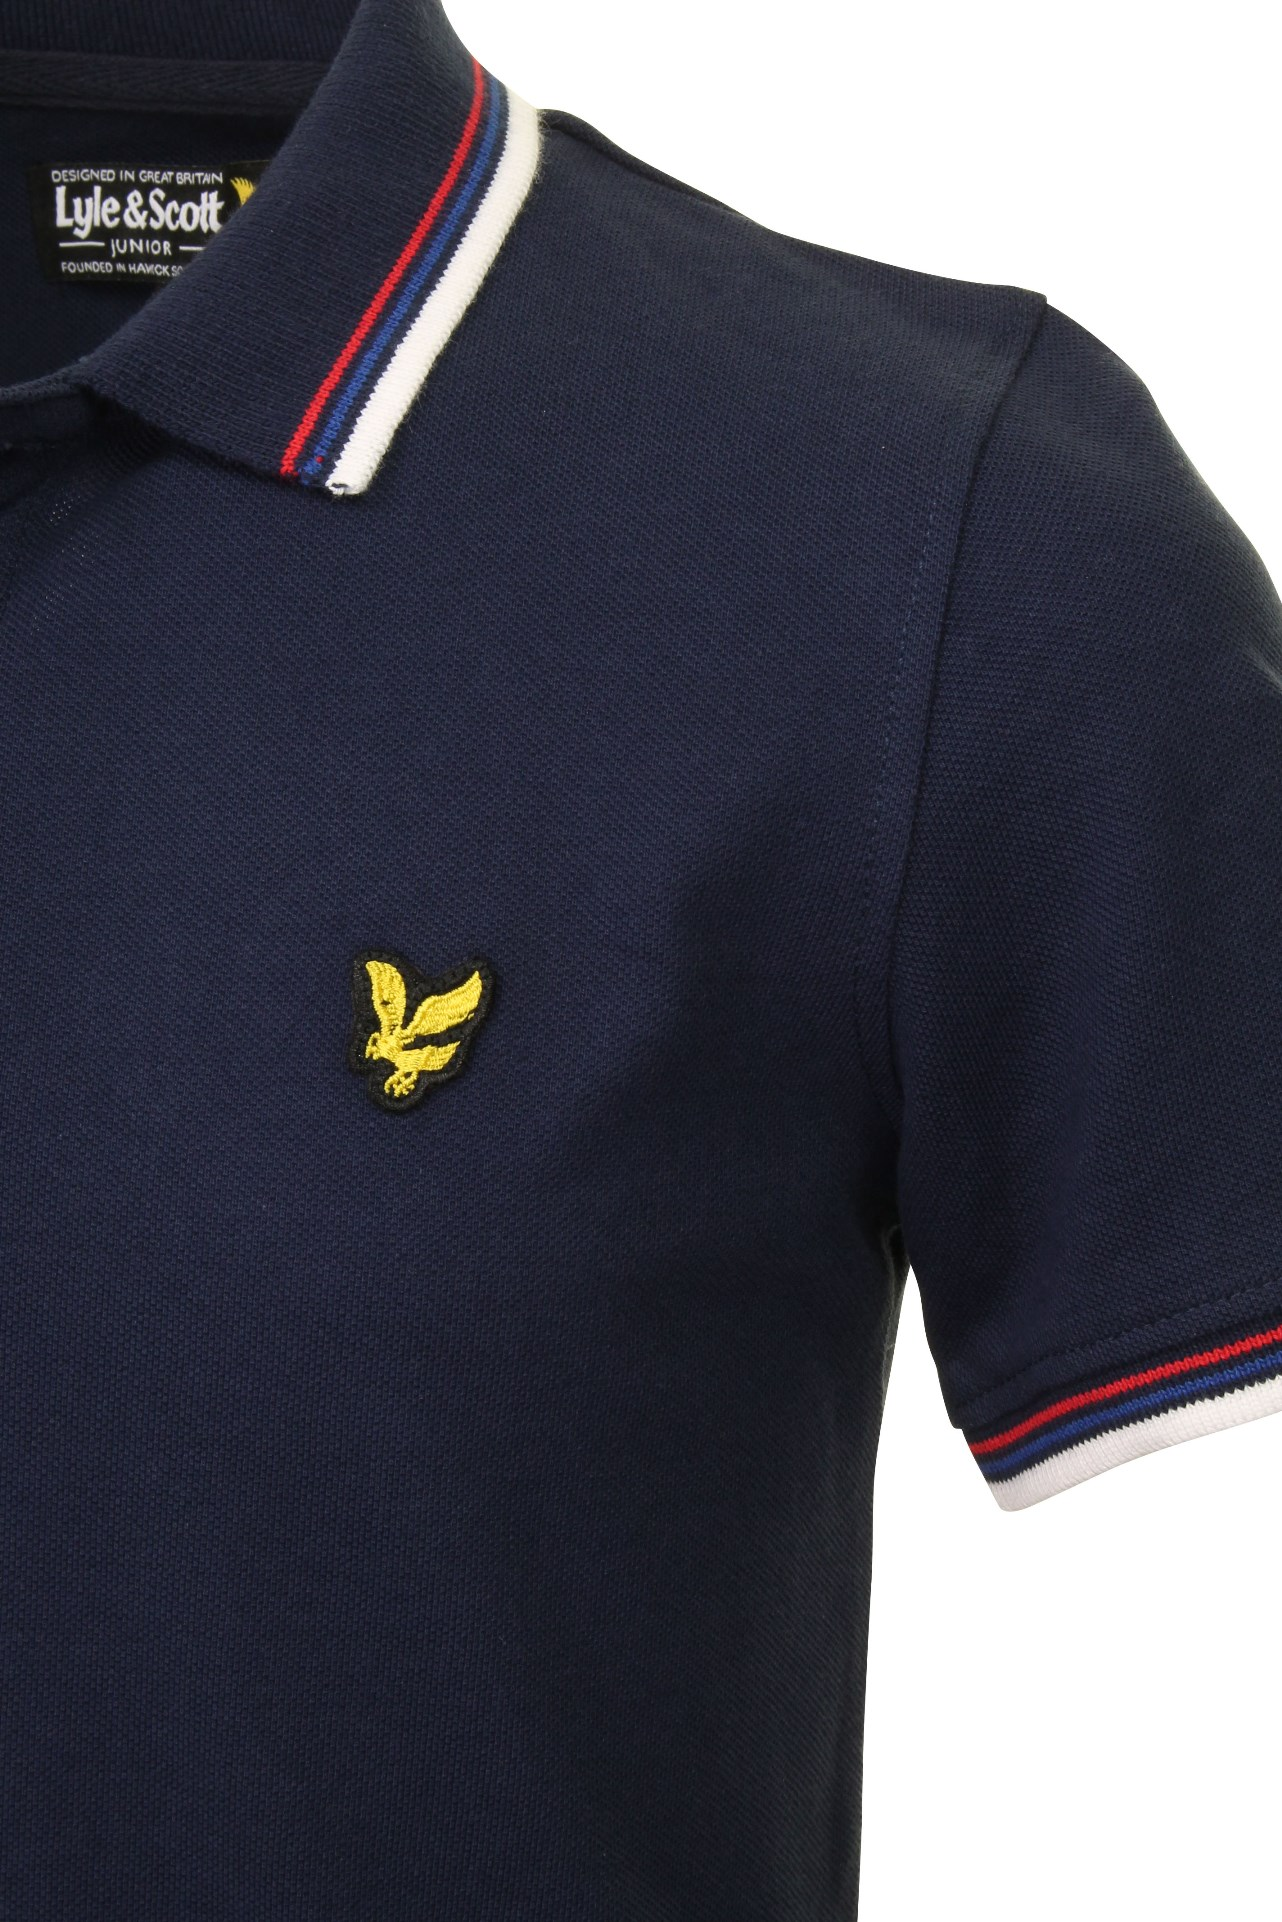 Lyle-amp-Scott-Boys-Junior-Tipped-Polo-T-Shirt thumbnail 7